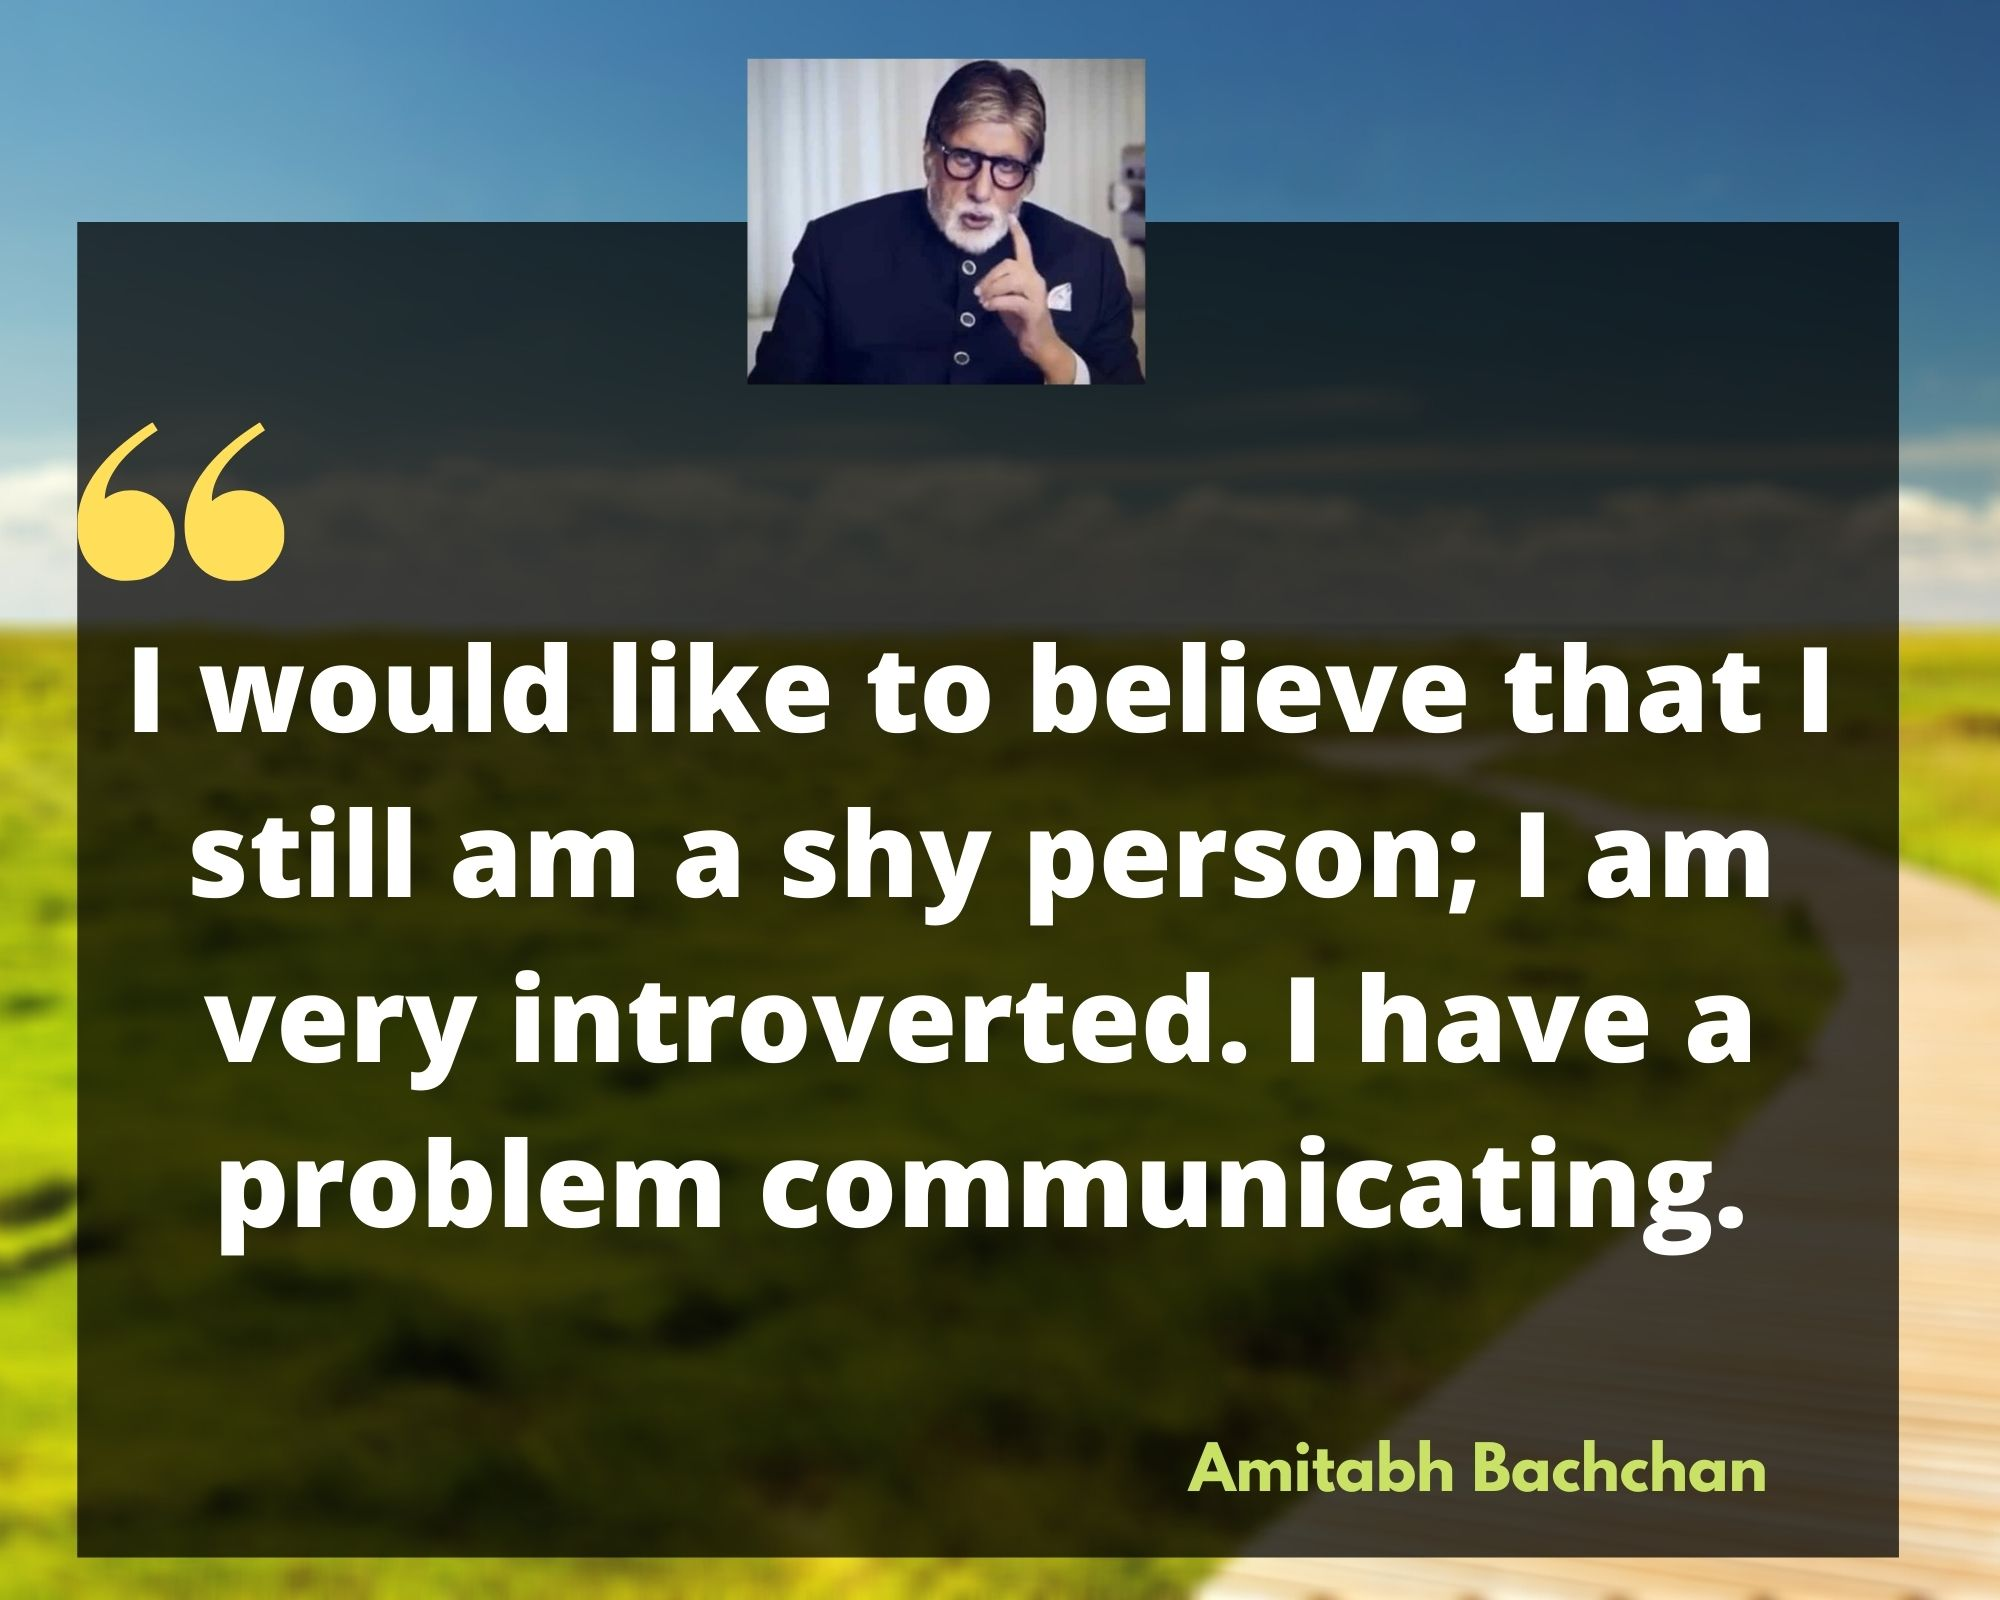 amitabh bachchan birthday quotes